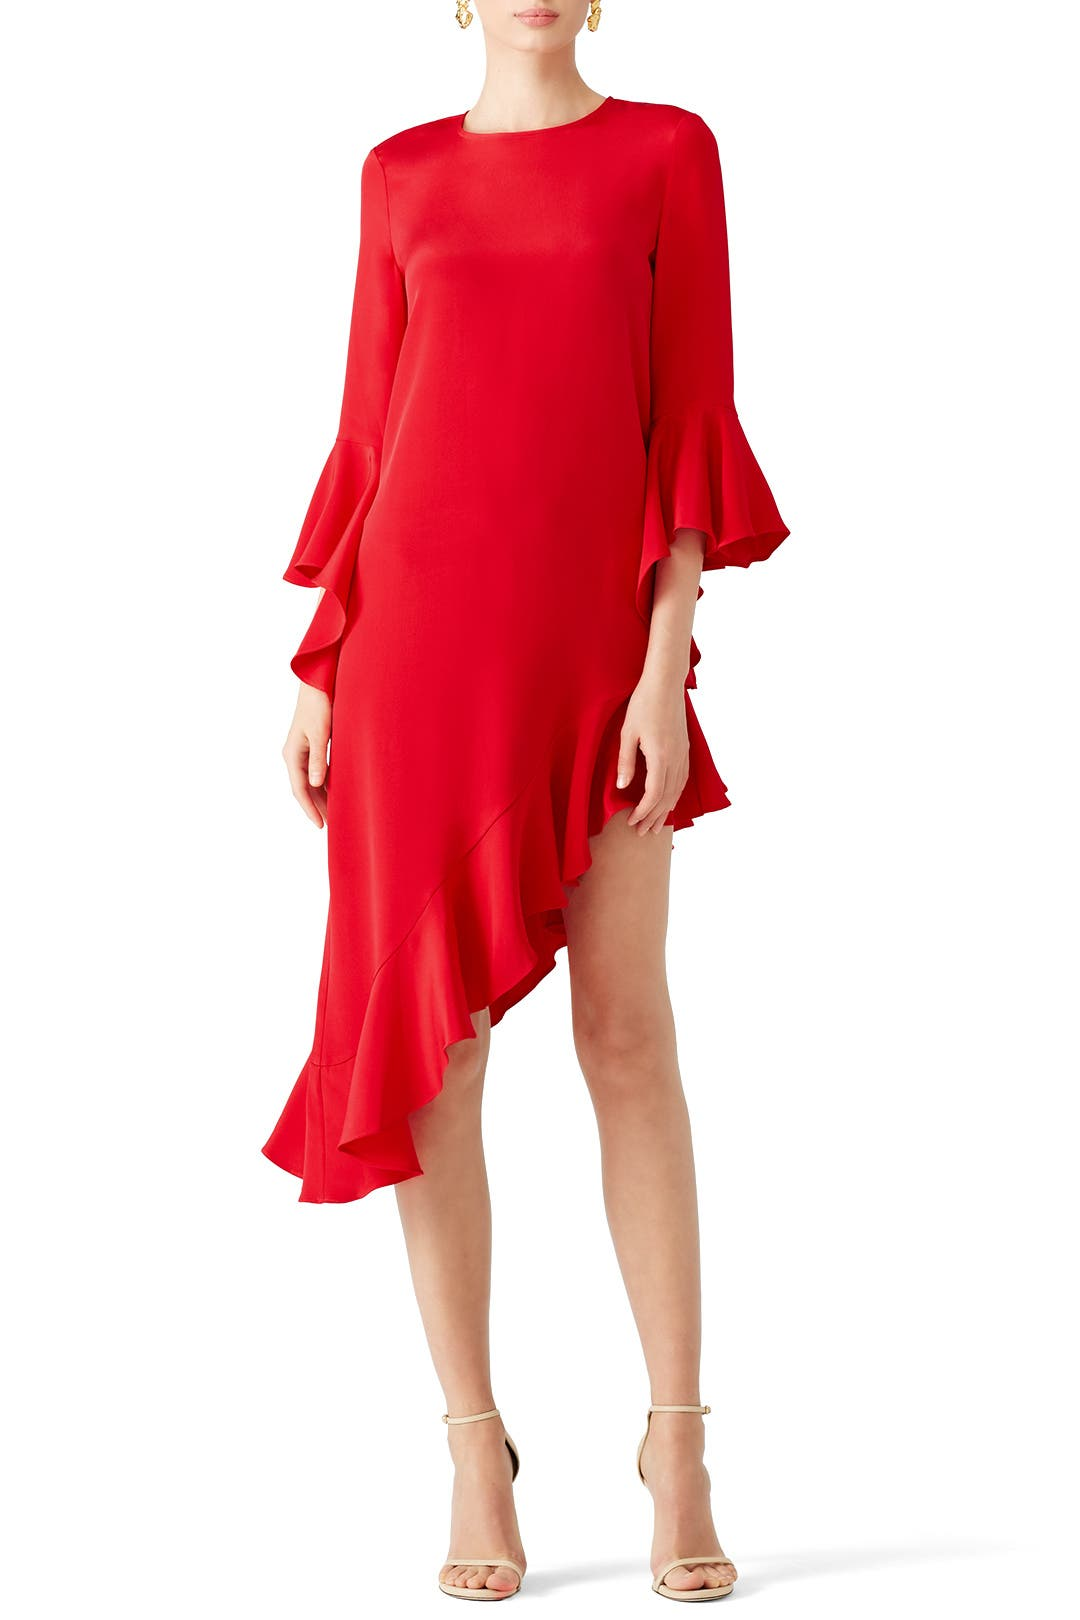 Red Hazel Dress By Alexis For 90 Rent The Runway